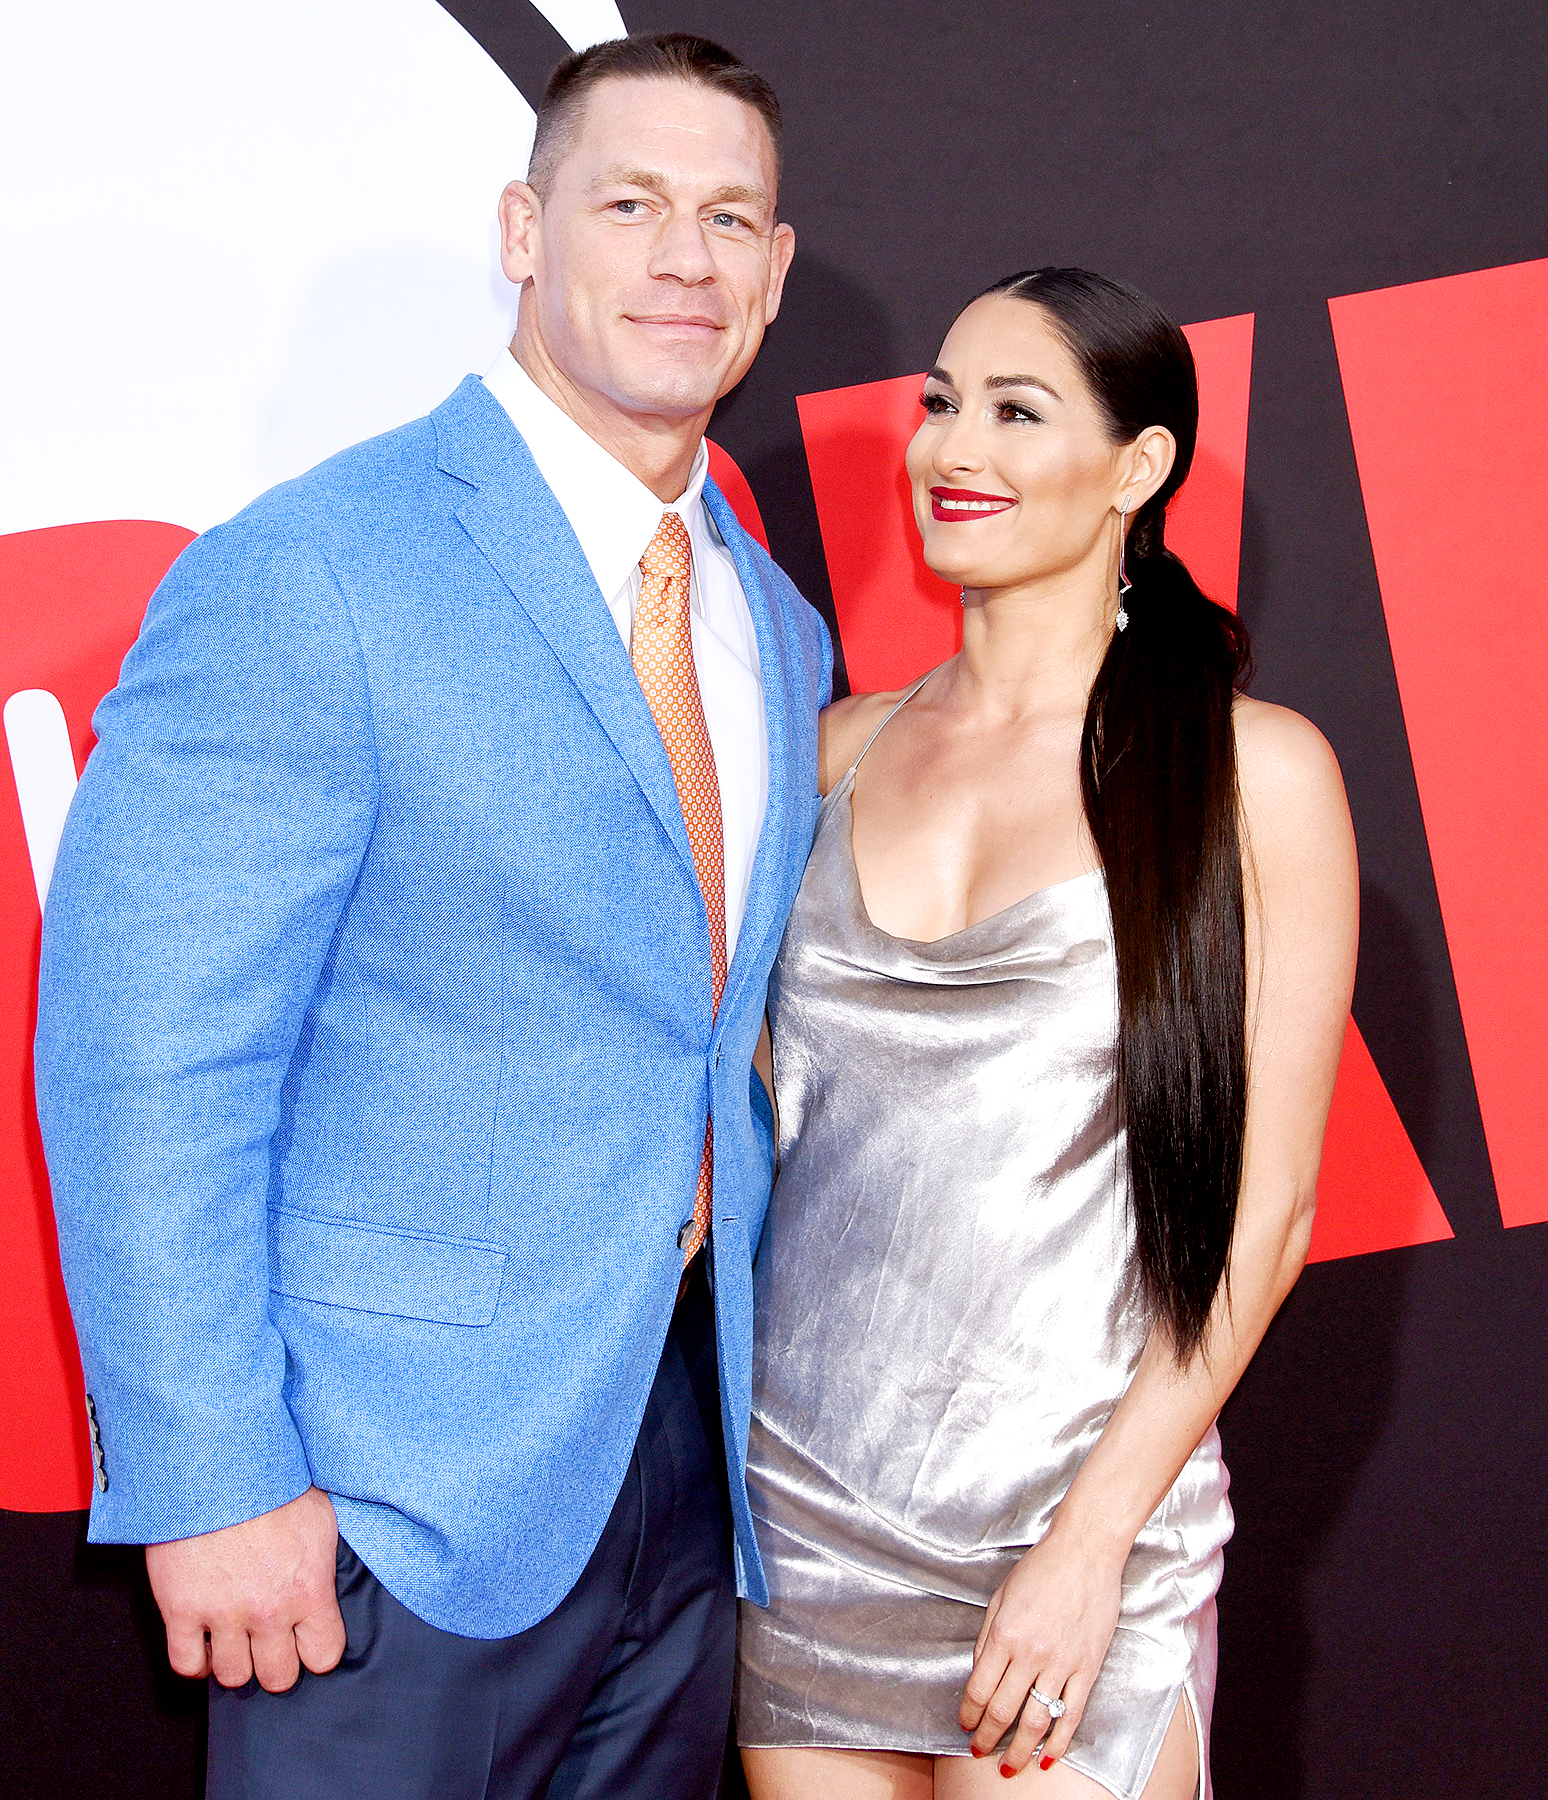 John Cena Calls Himself the 'Rug Man' in Whole Bellas Clip